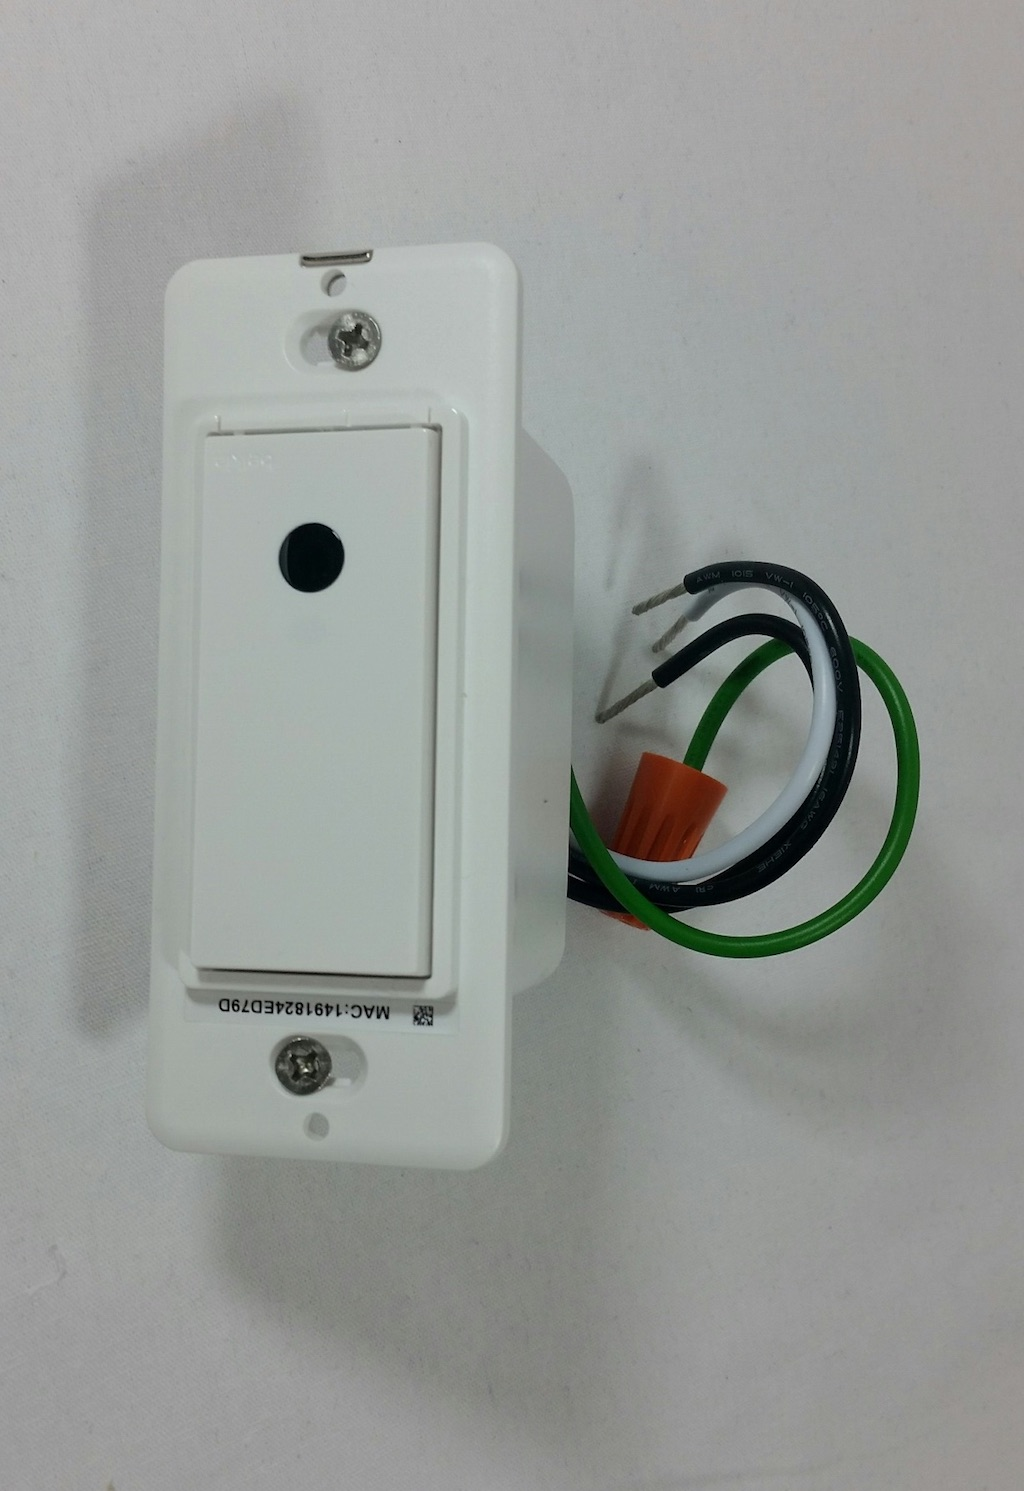 note about the wi-fi light switch: you needn't be an electrician nor a  handyman/woman to get this light switch installed and working, but please  do take